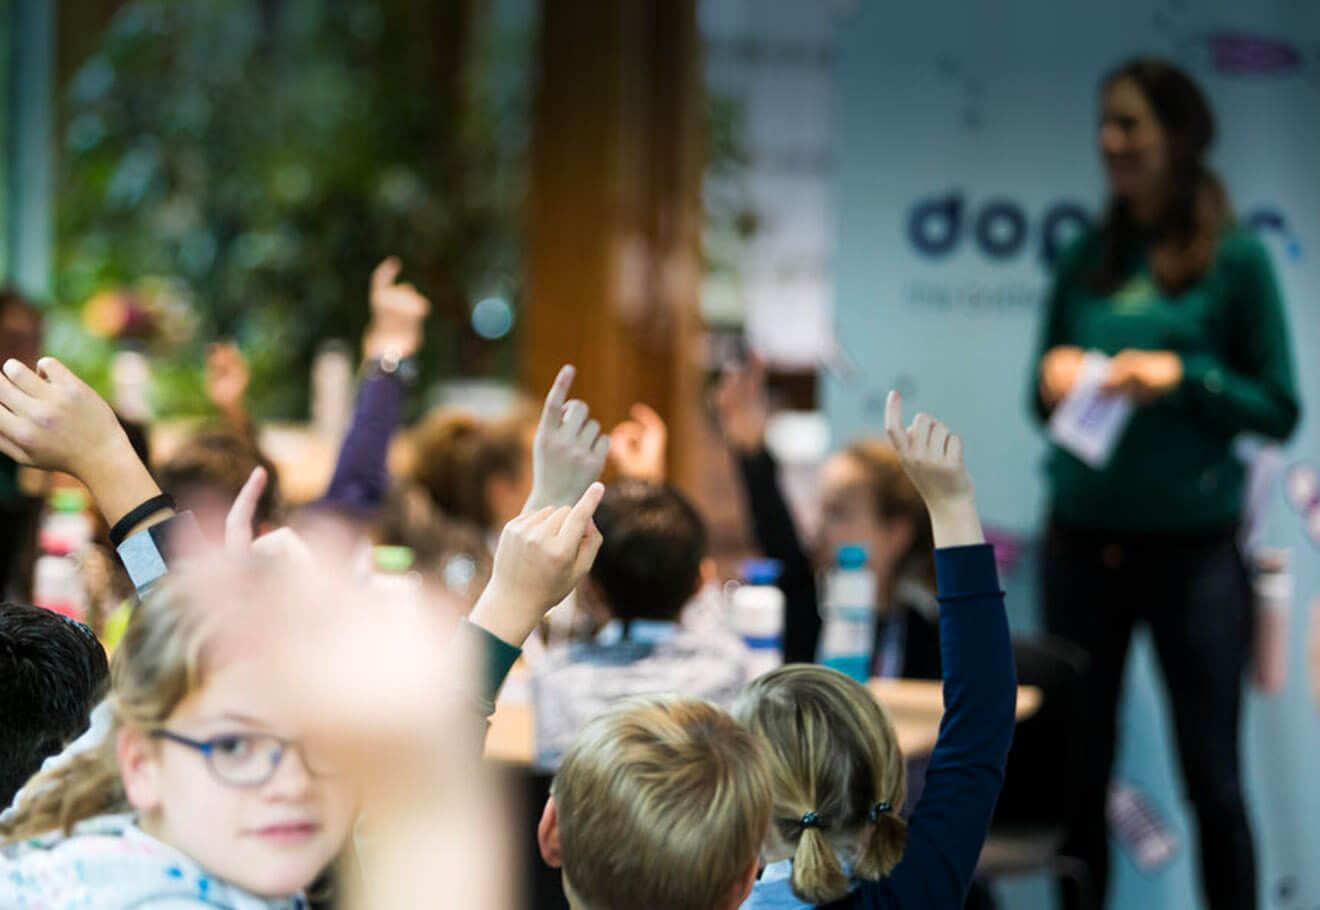 Children raising their hands up in a classroom